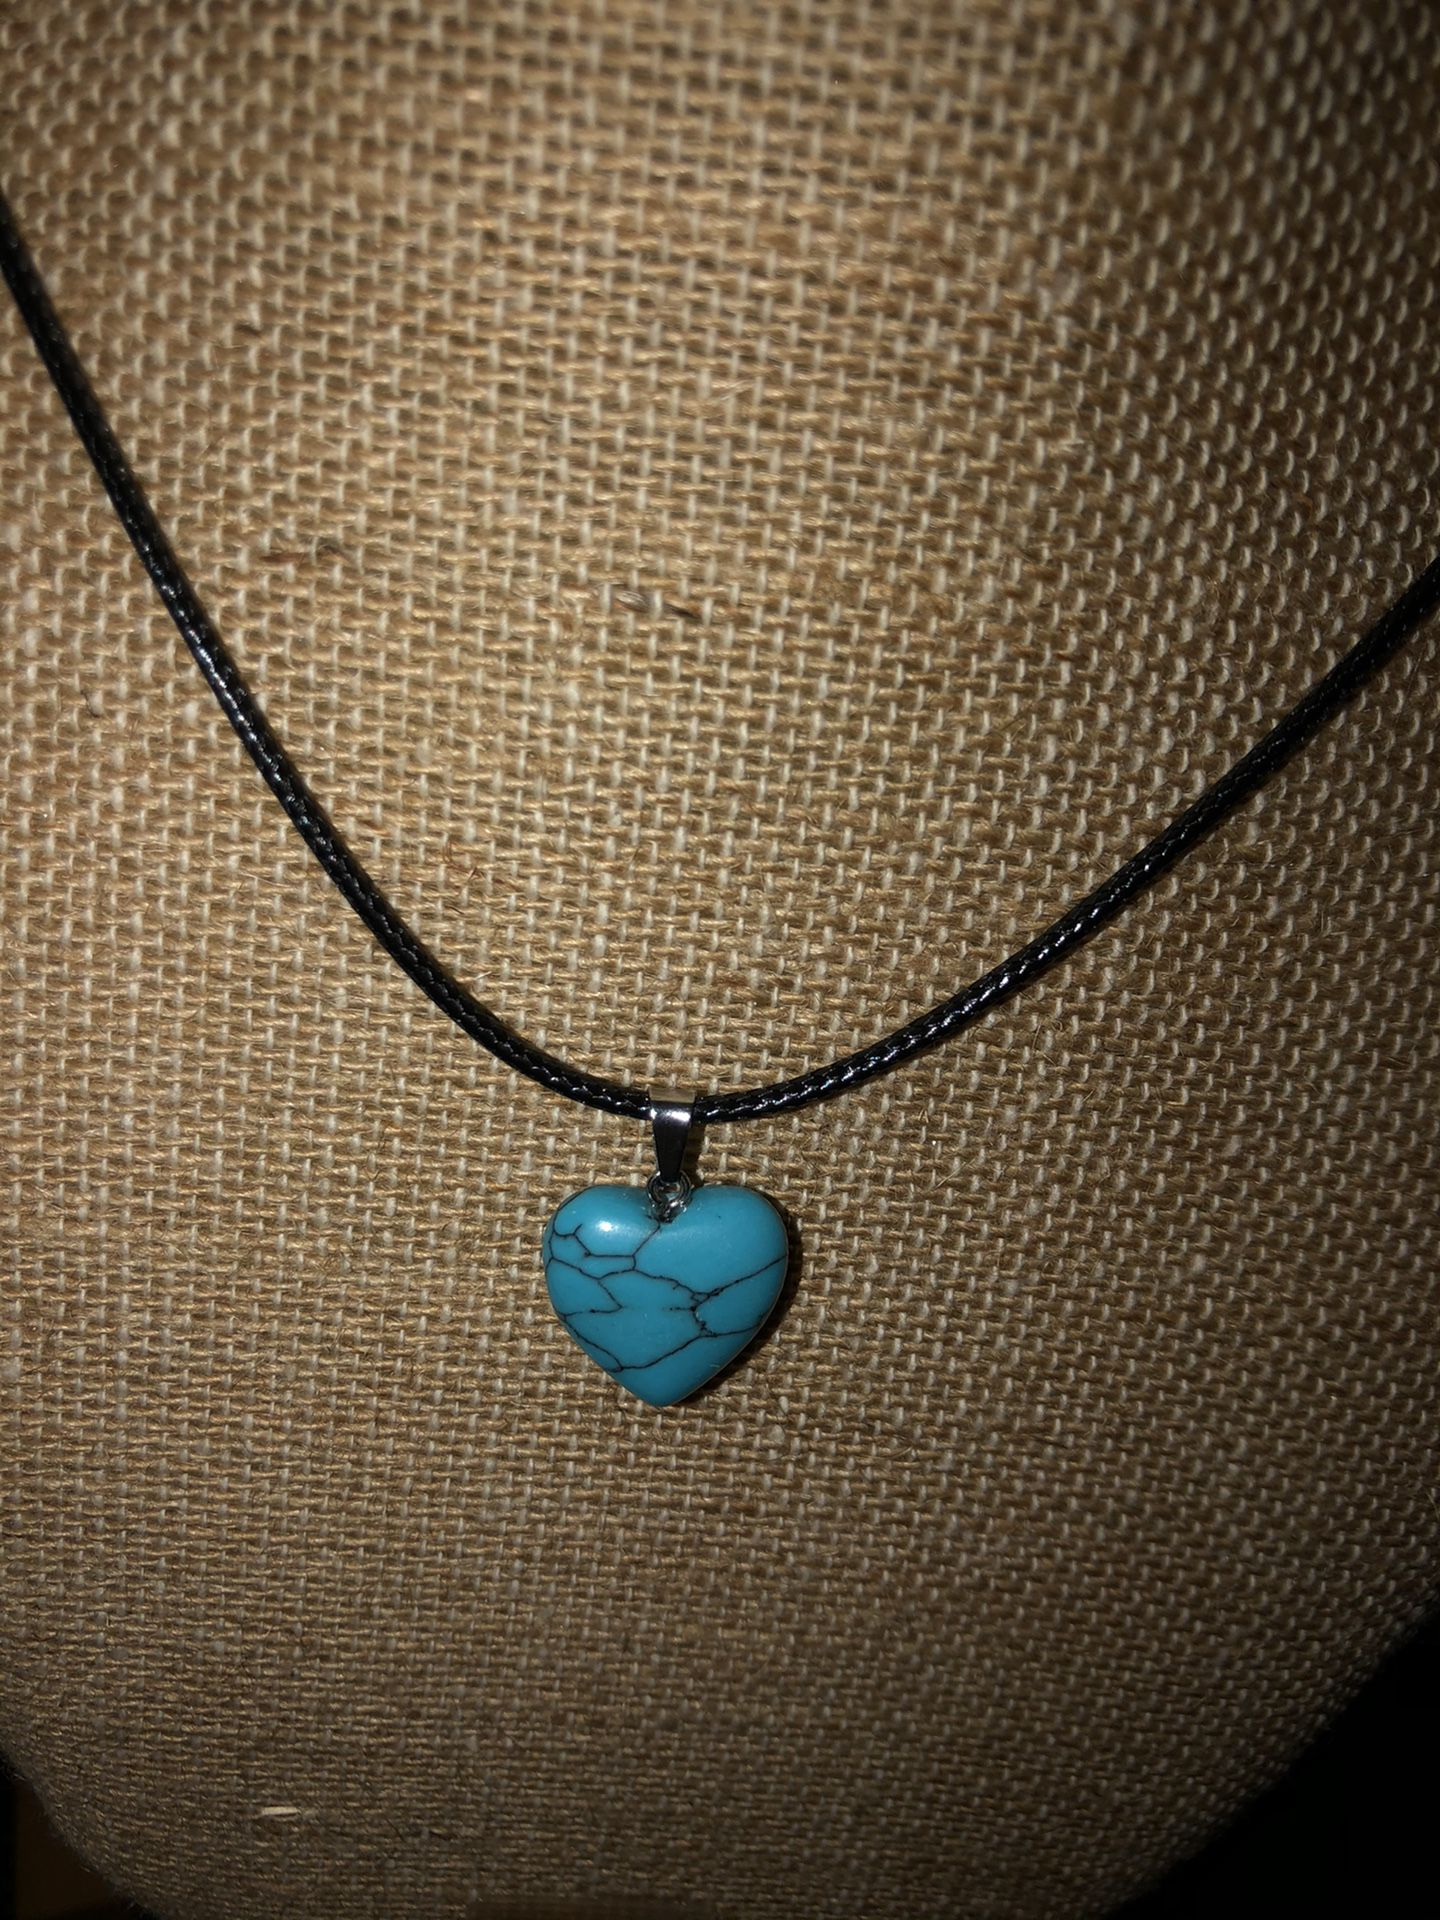 Turquoise stone heart necklace